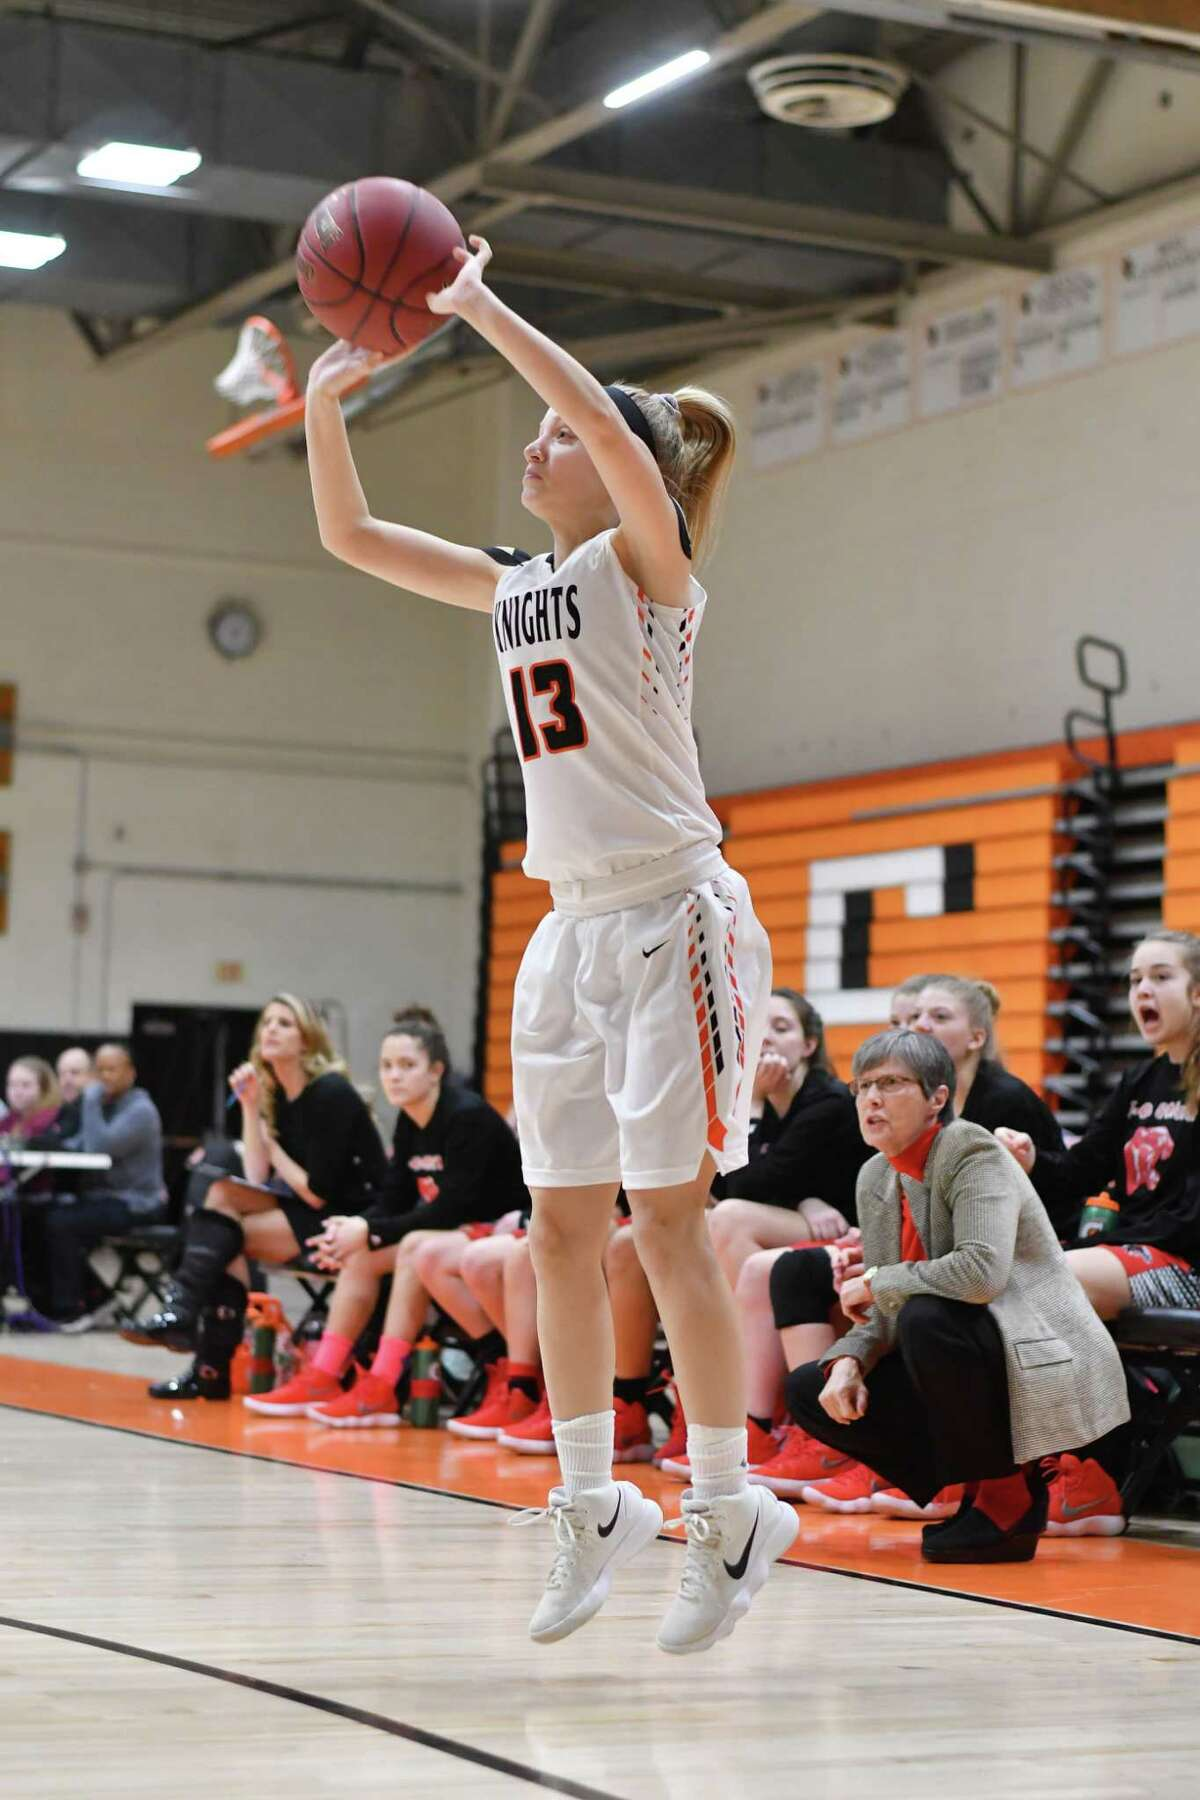 Kelly Jagodzinski (13) of the Stamford Black Knights attempts a three point shot during the Class LL opening round game against the E.O Smith Panthers at Stamford High School on Monday February 26, 2018, in Stamford, Connecticut.